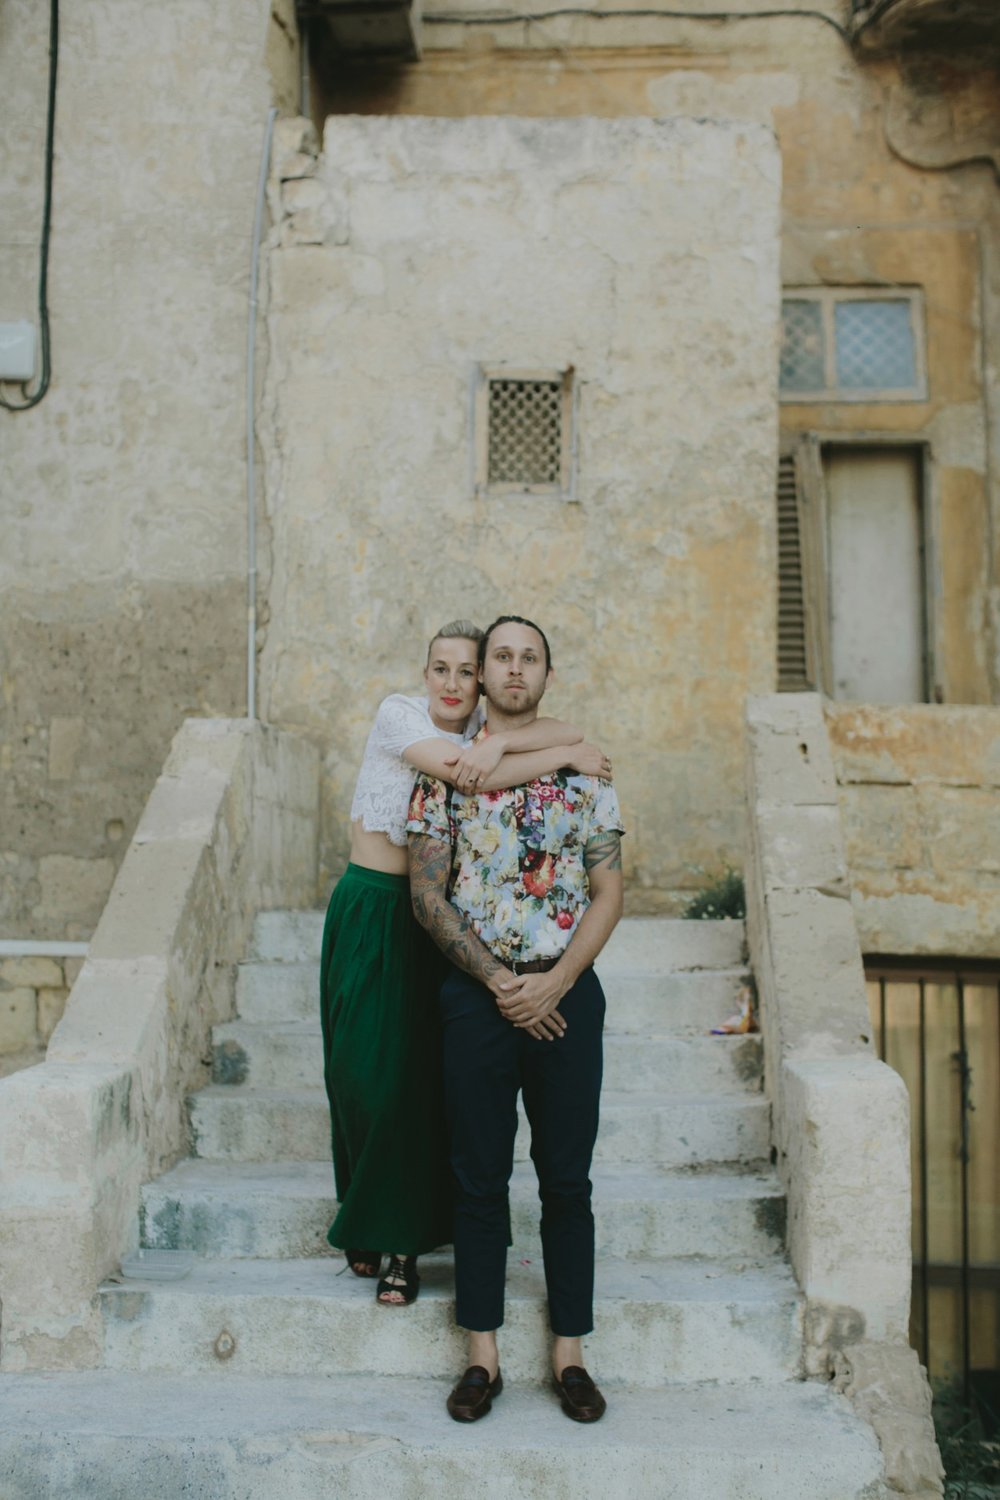 I-Got-You-Babe-Weddings-Malta-Destination-Elopement-Petra-Brent009.jpg